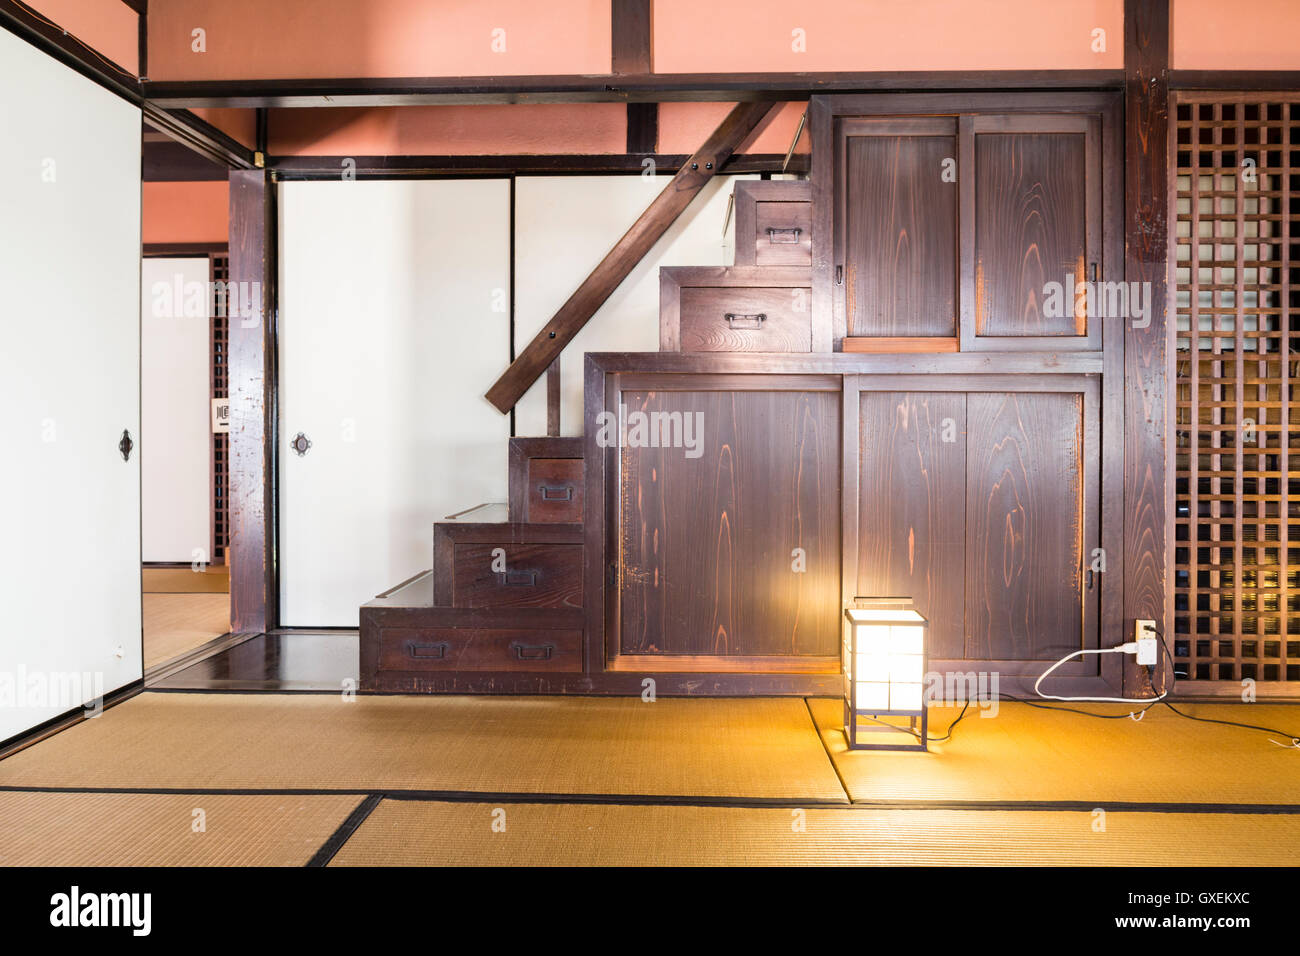 Japan, Izushi. Izushi Shiryokan museum, interior. Large tatami mat room with staircase with built in storage cupboard - Stock Image